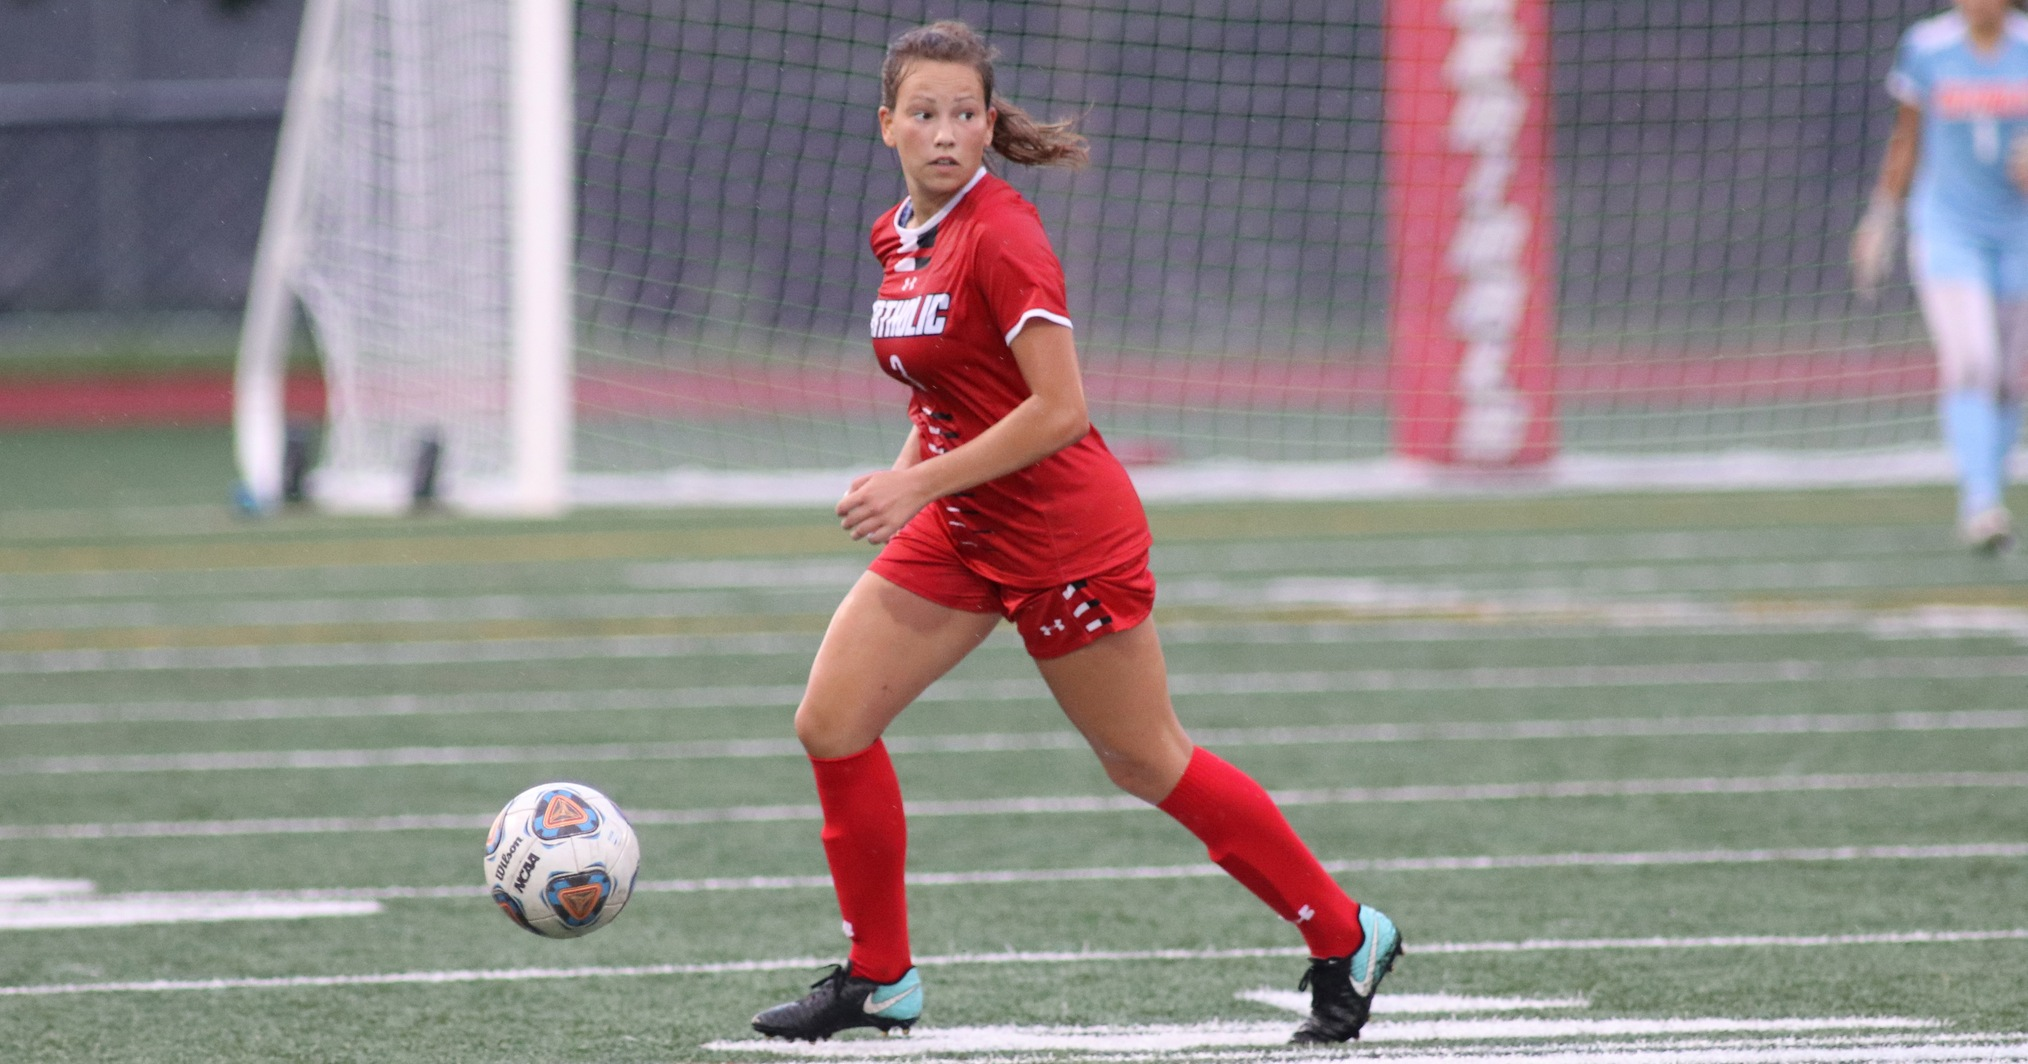 Boretti and Green Lead Cardinals in 2-0 Win Over Bobcats